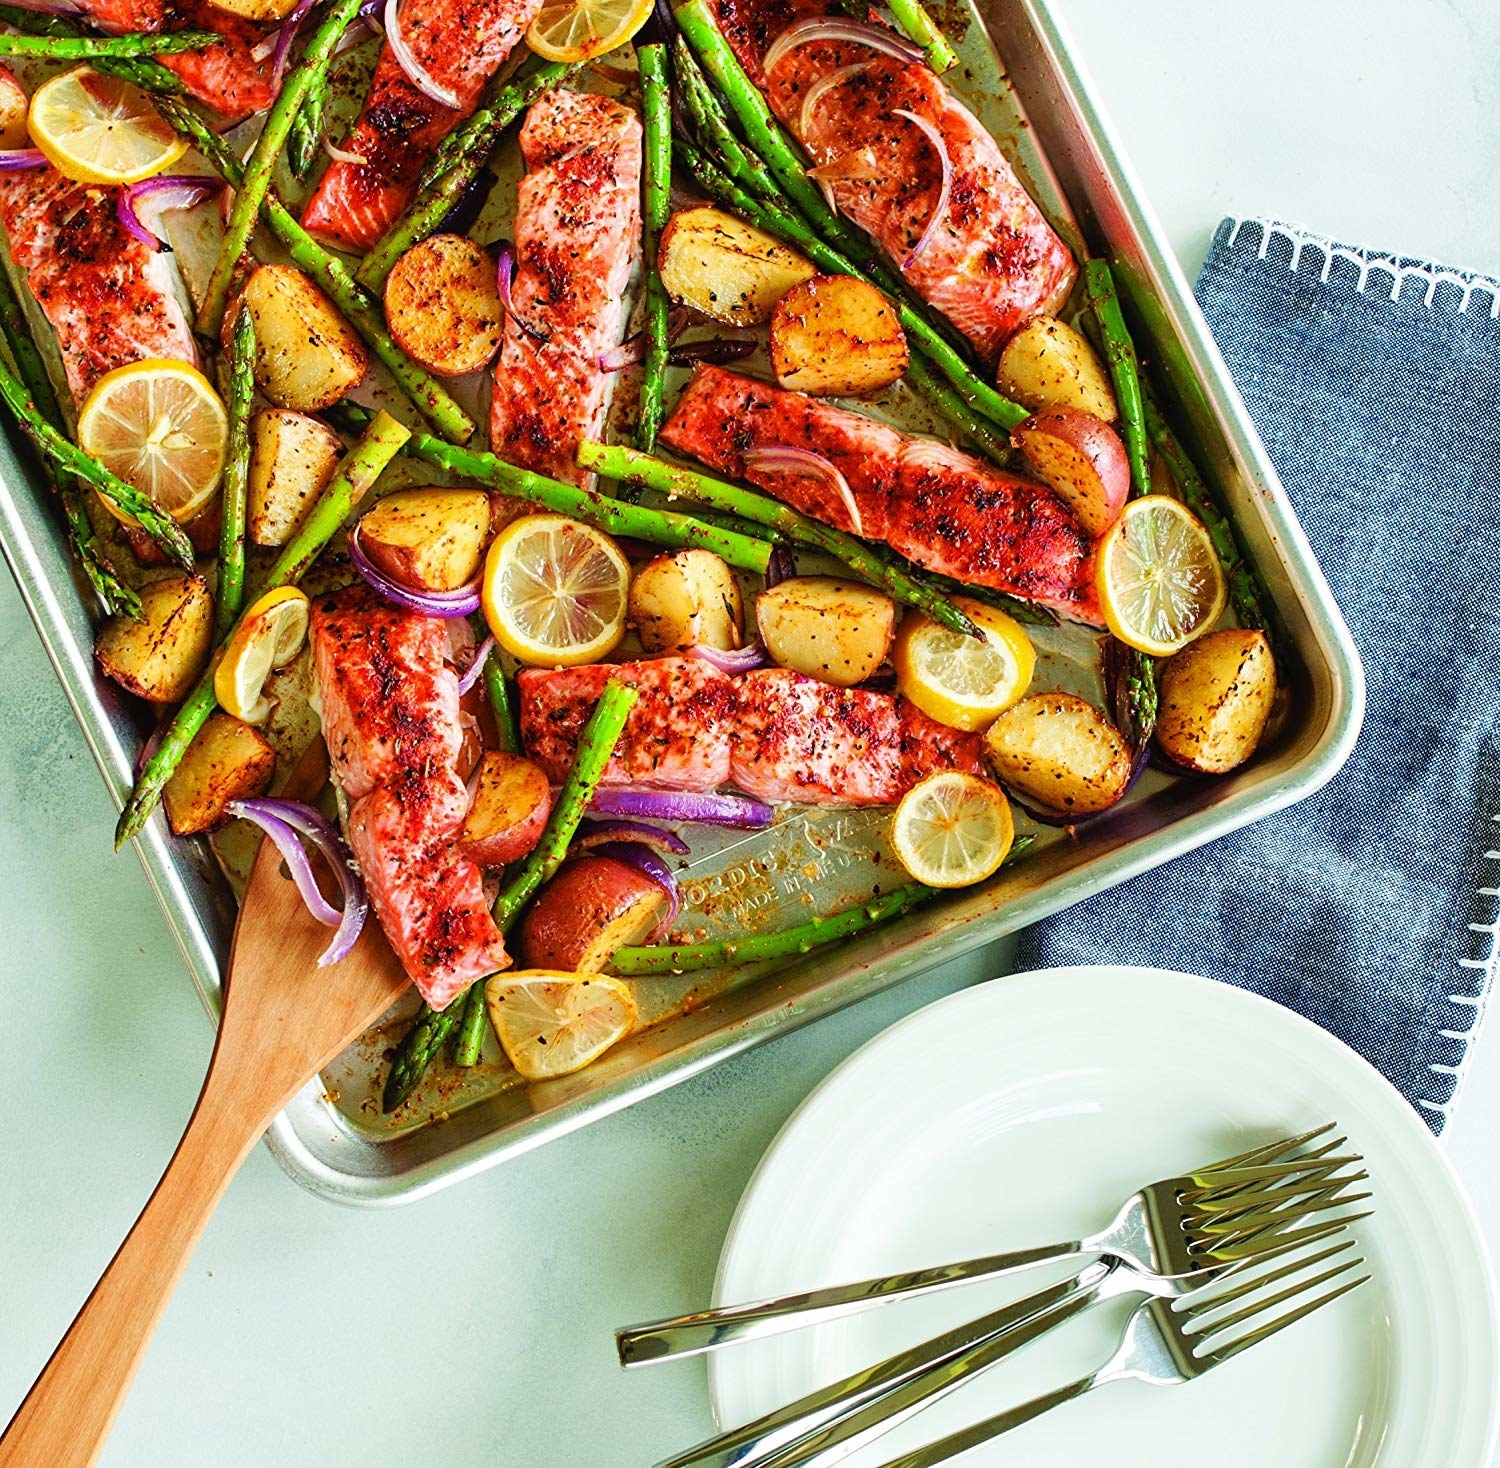 A sheet pan with salmon, potatoes, lemon slices, and asparagus on it